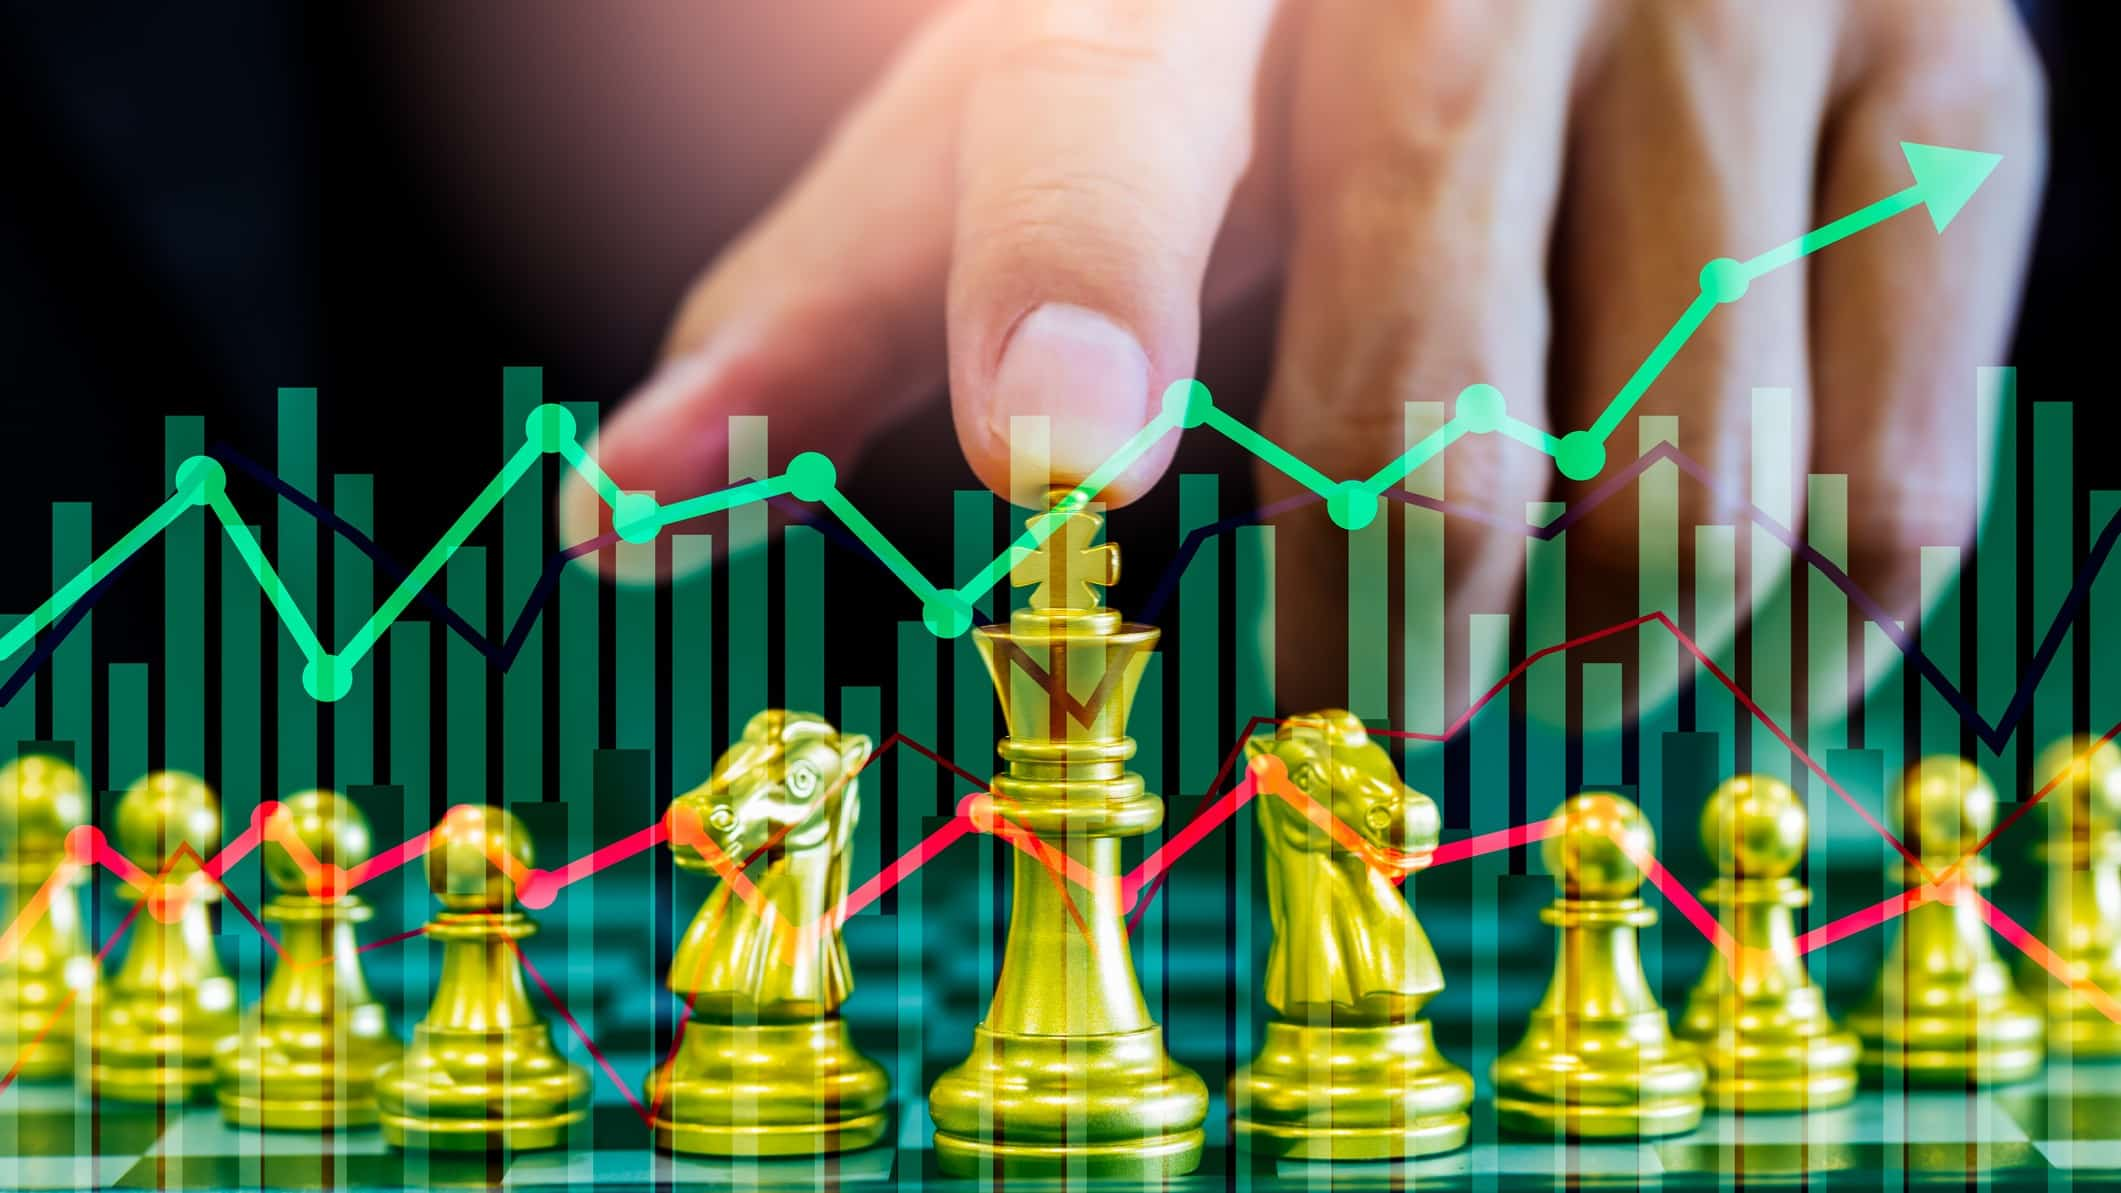 Share investor with chess pieces deciding to buy or sell ASX shares